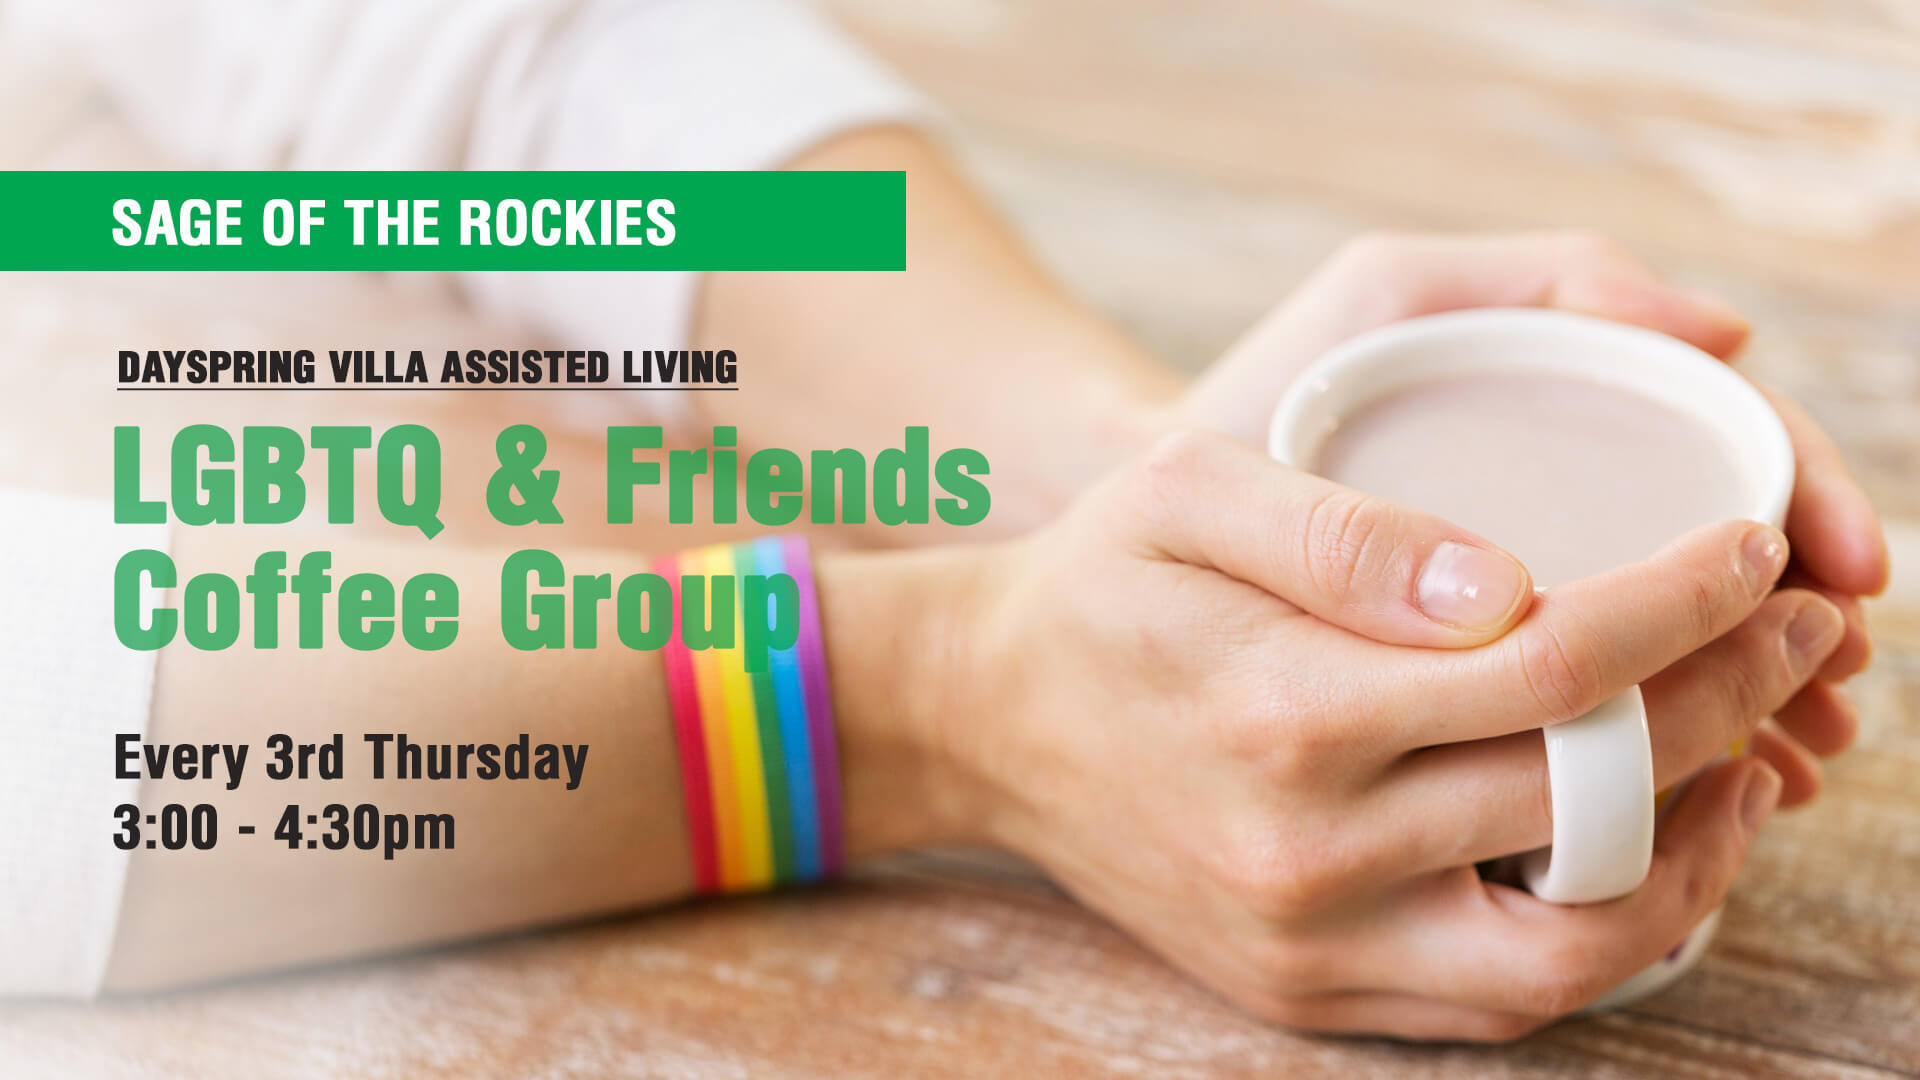 SAGE LGBTQ & Friends Coffee Group at Dayspring Villa Assisted Living